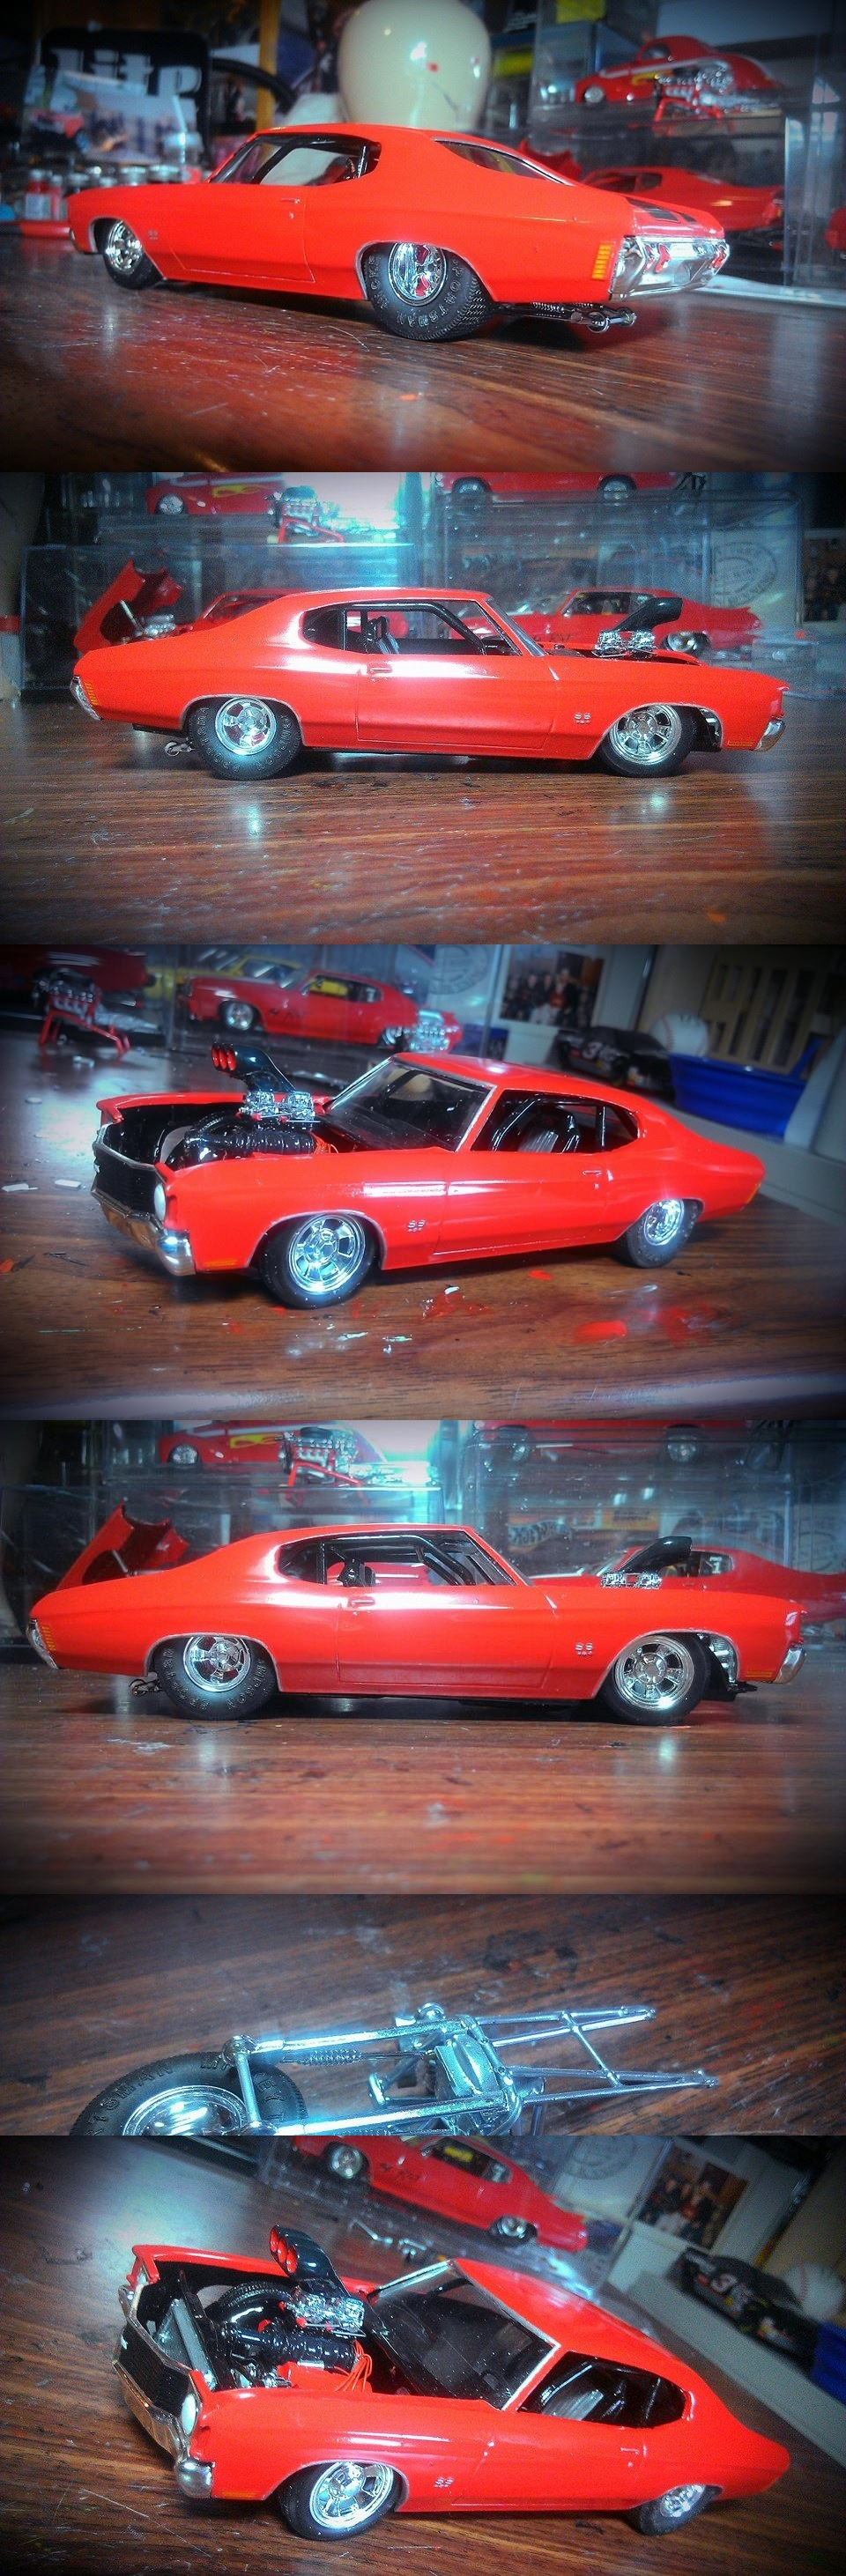 72 Chevelle race car